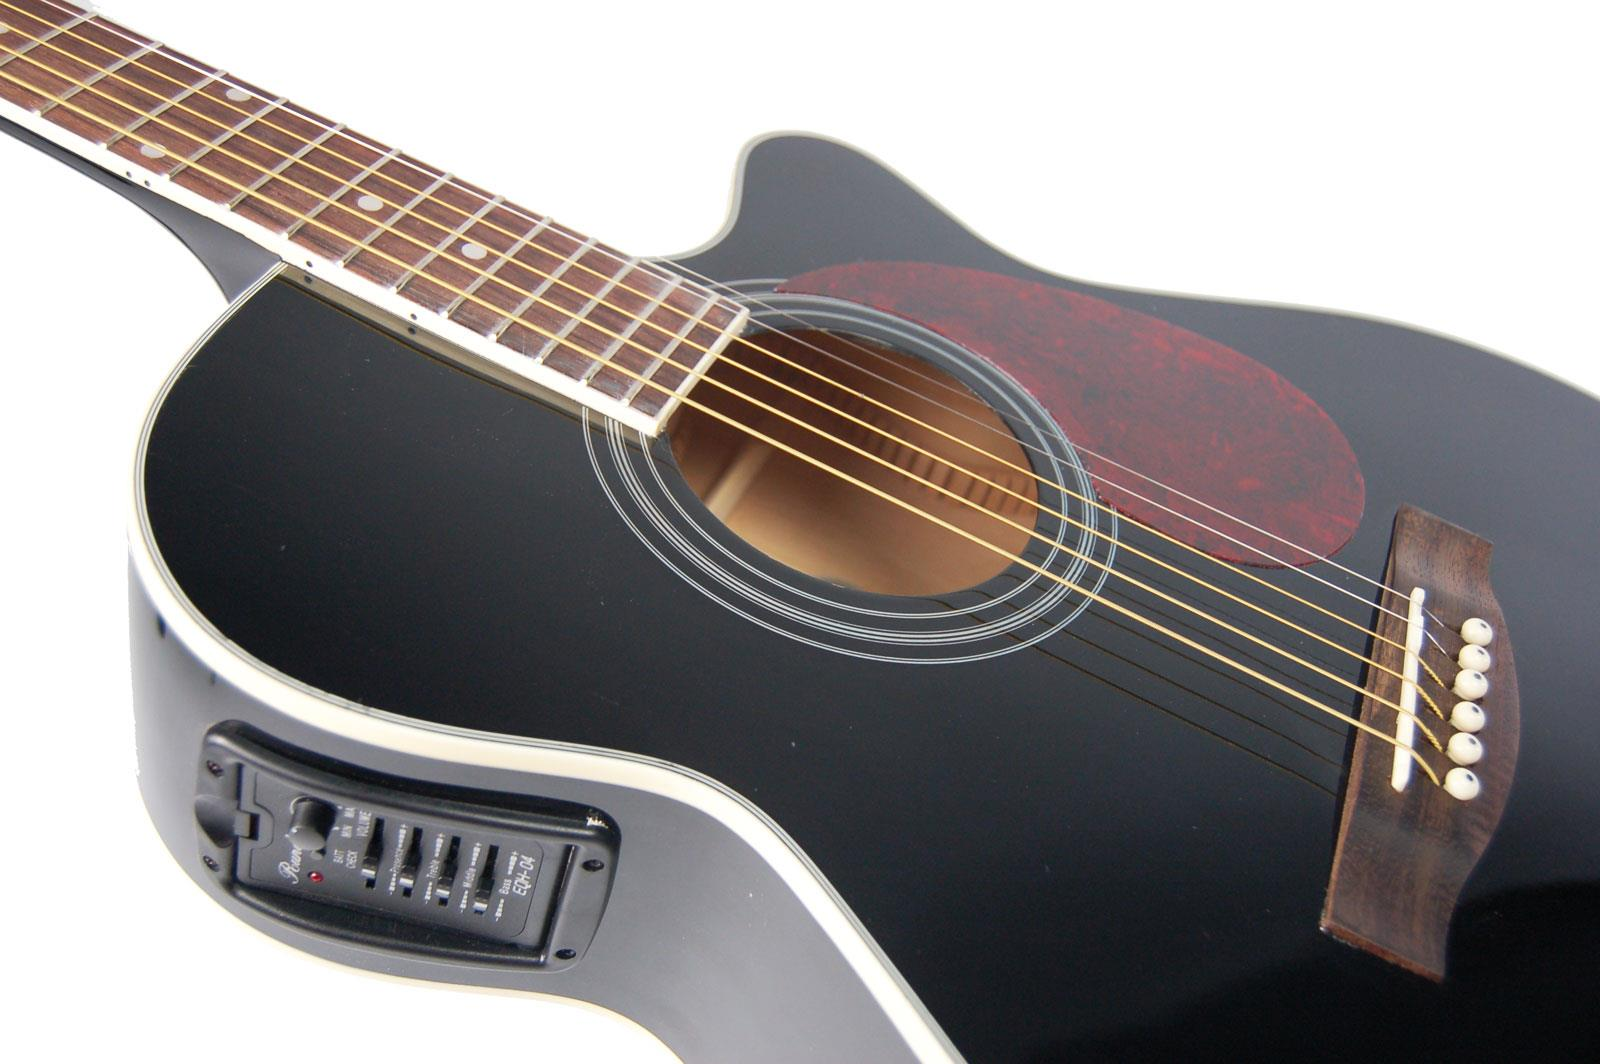 hudson-hf1dx-electro-acoustic-guitar-pack-black-gloss-3.jpg